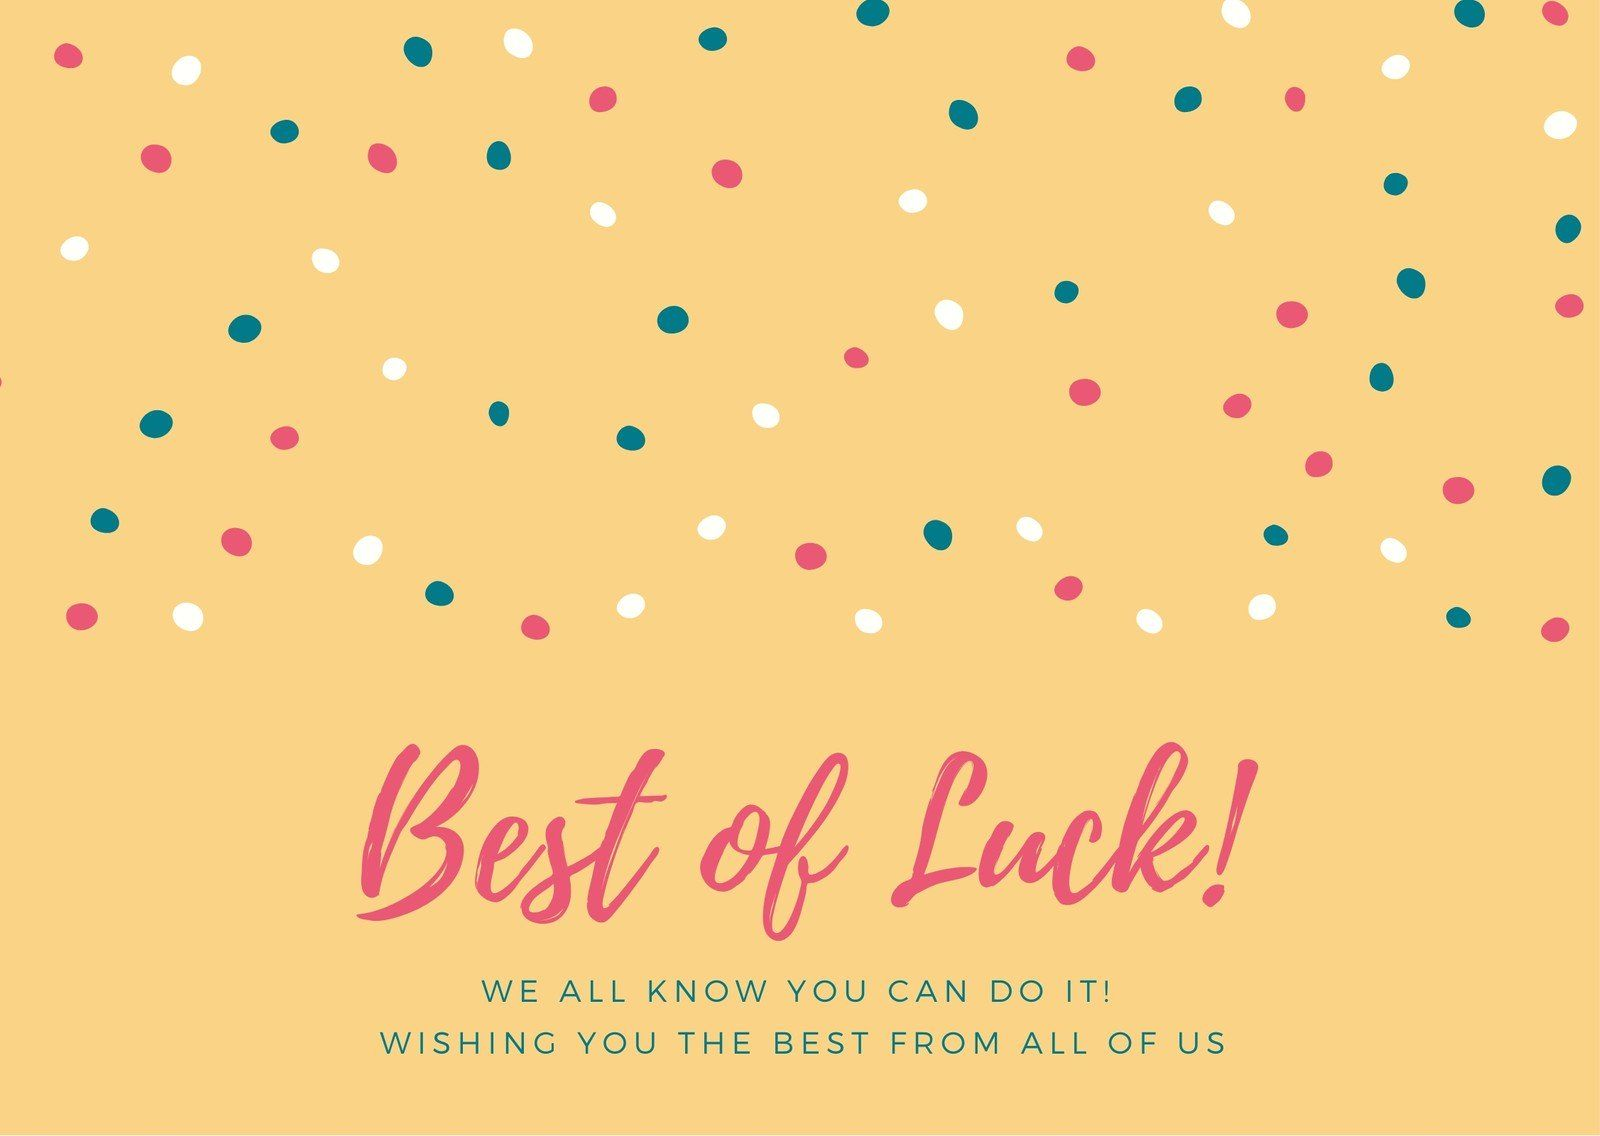 Yellow With Polka Dots Good Luck Card Templatescanva Regarding Good Luck Card Templates Business Profes Good Luck Cards Goodbye And Good Luck Card Template